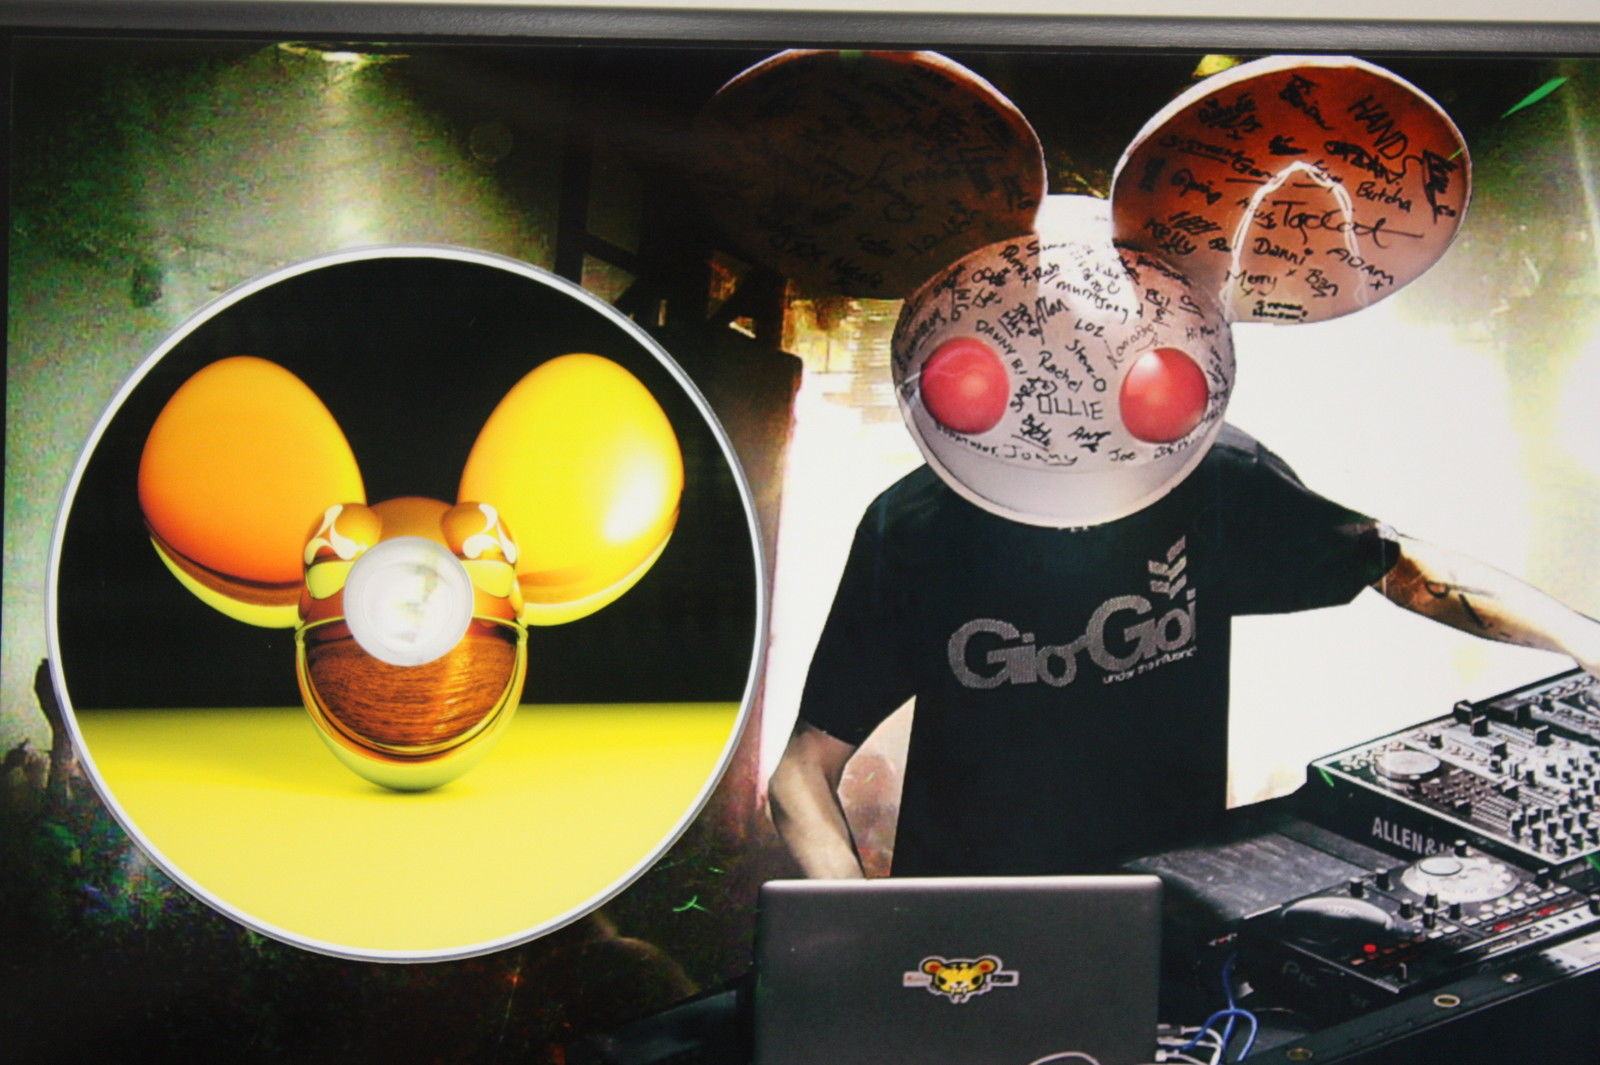 dead mau5 picture cd ltd edition plaque free and similar items. Black Bedroom Furniture Sets. Home Design Ideas